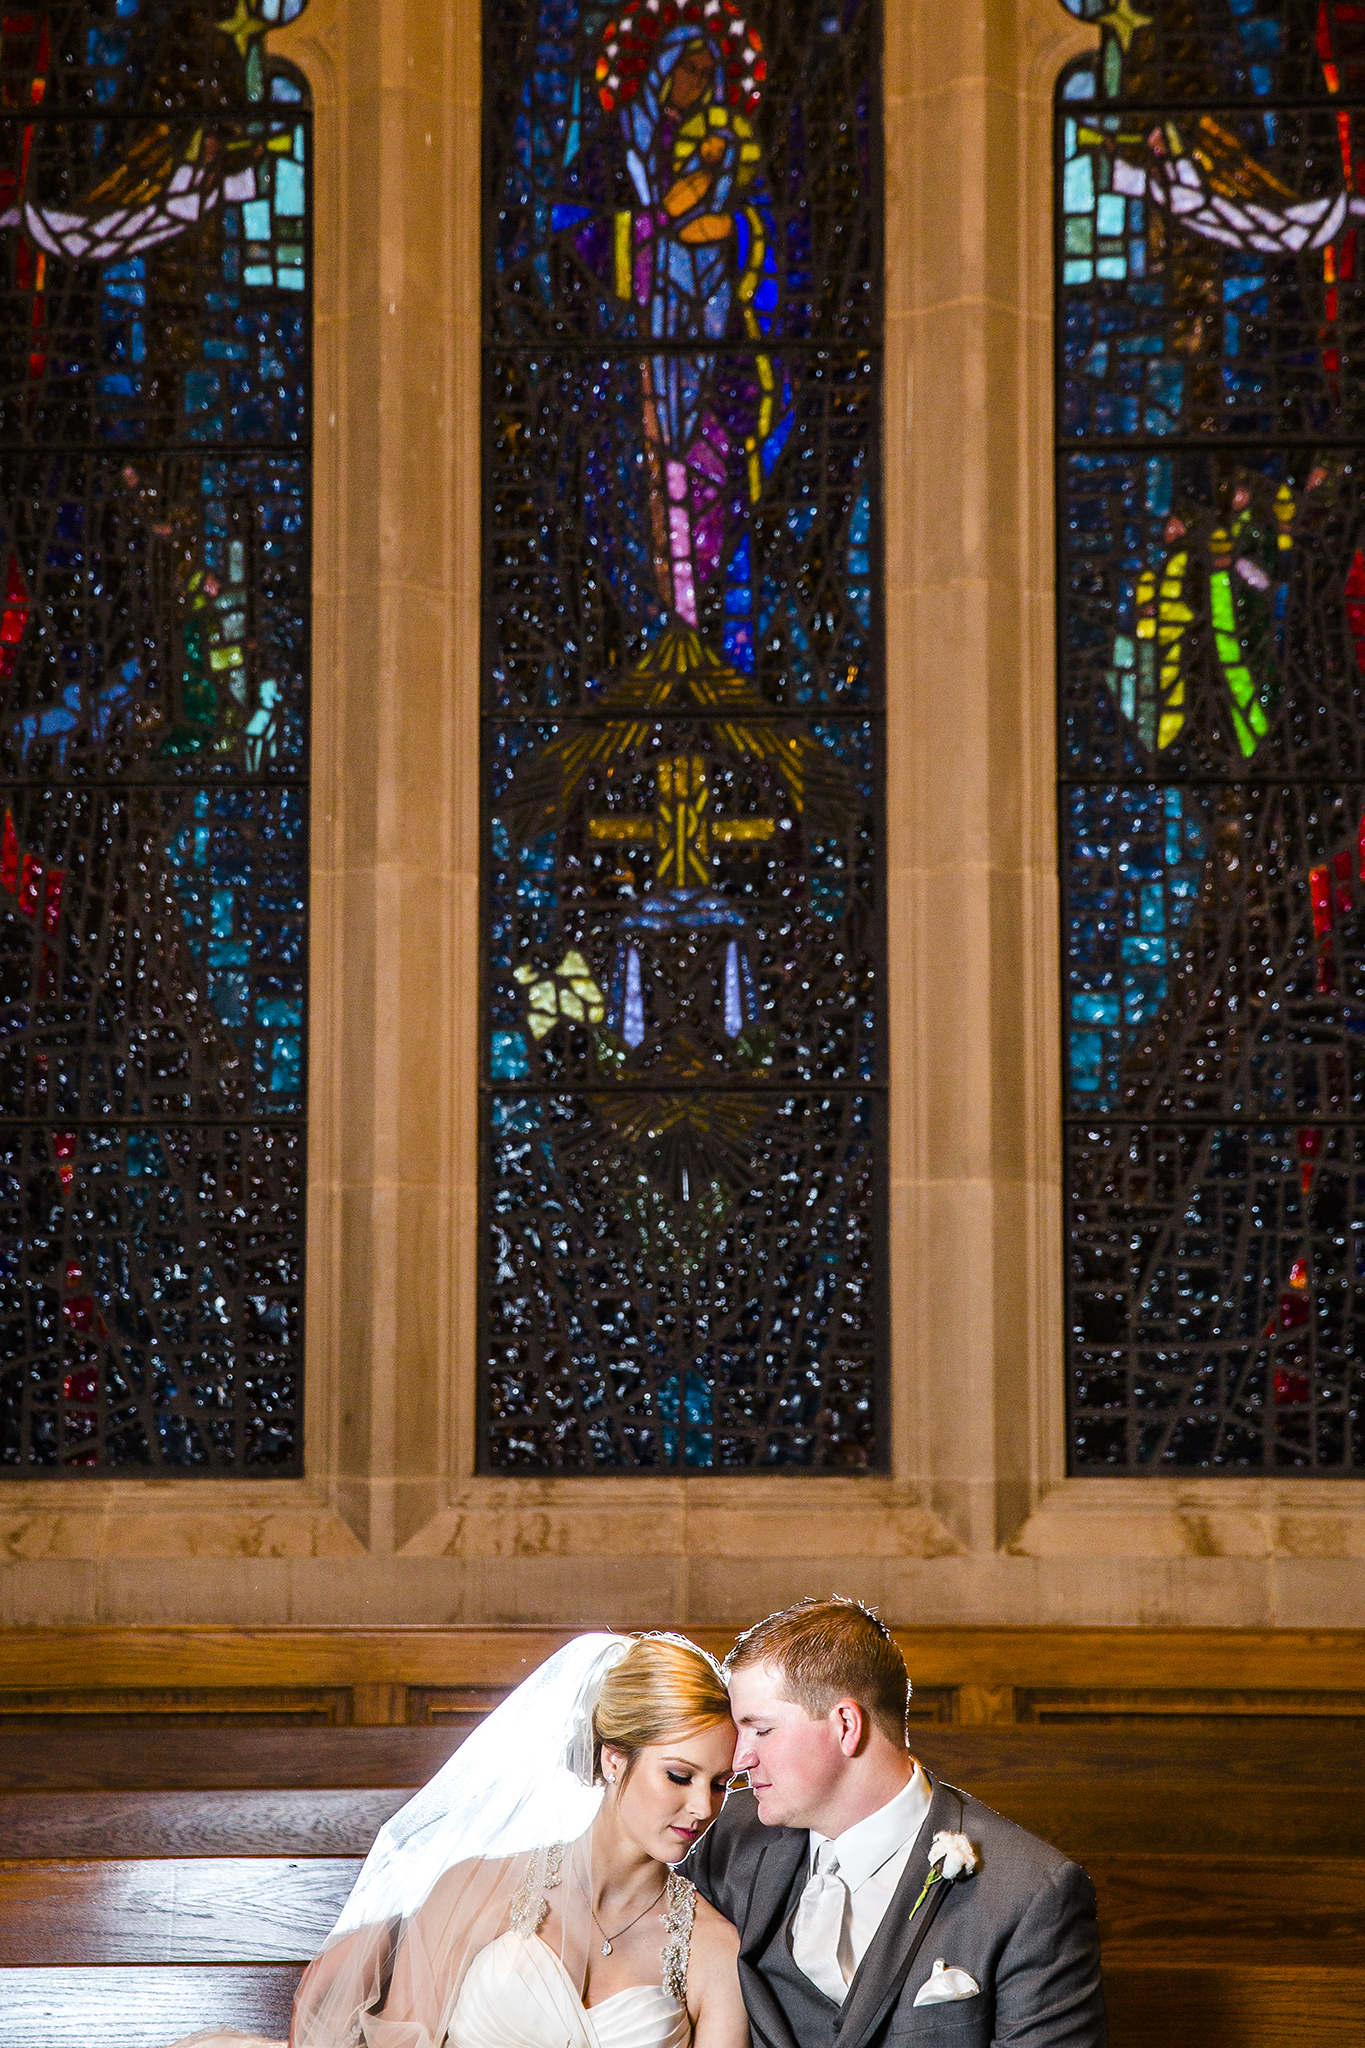 bride and groom portraits, stained glass windows, veil, romantic, sweet, love